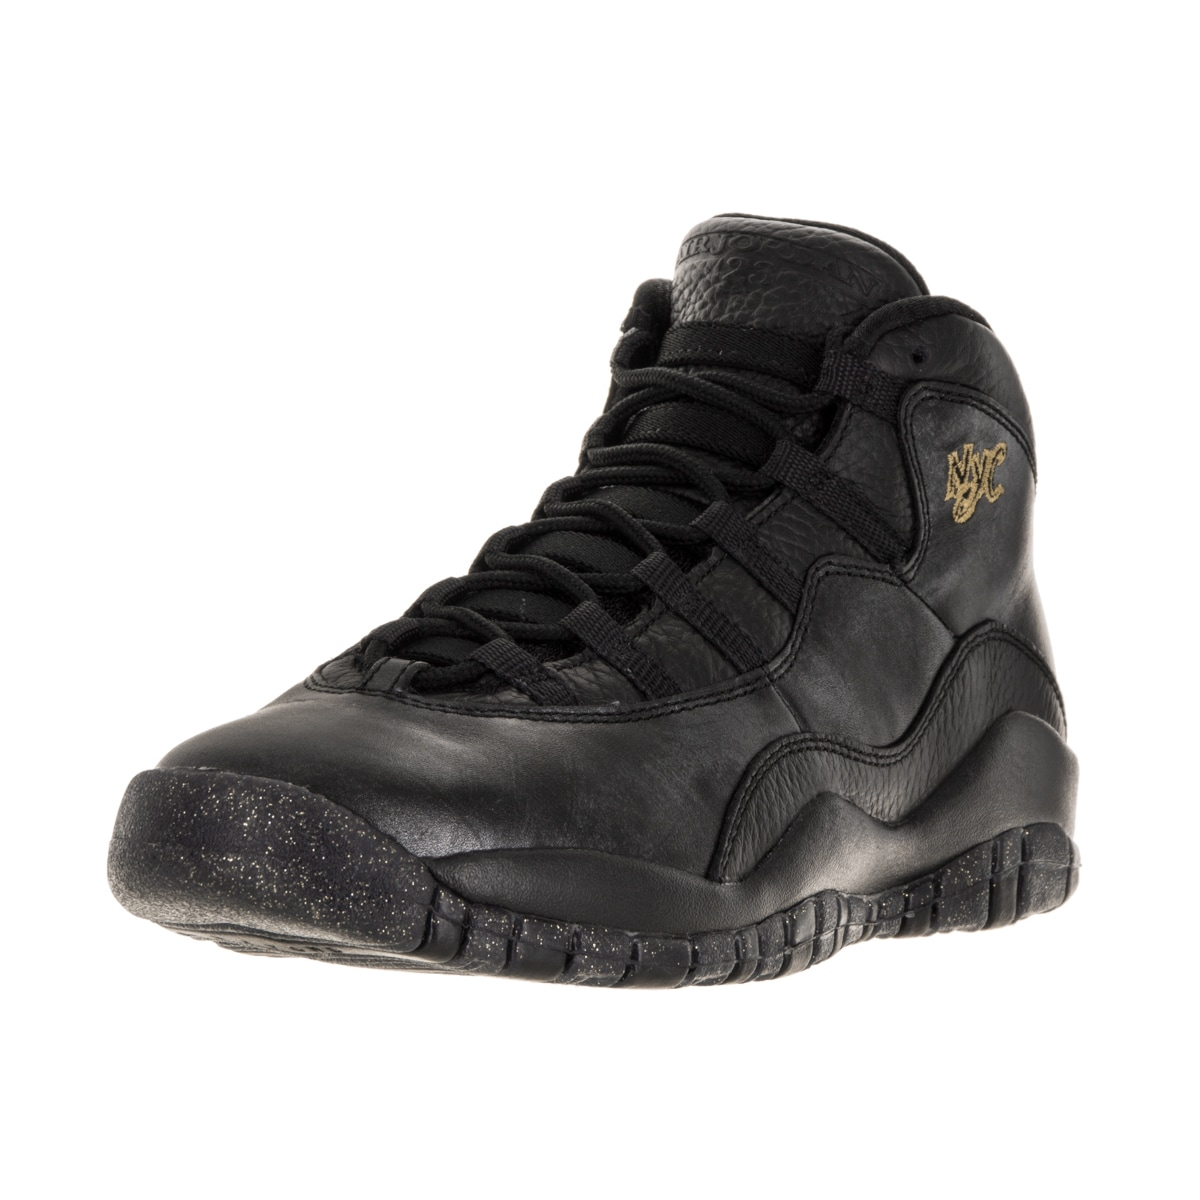 Shop Nike Jordan Kids  Air Jordan 10 Retro Black Leather Basketball ... fa9162210